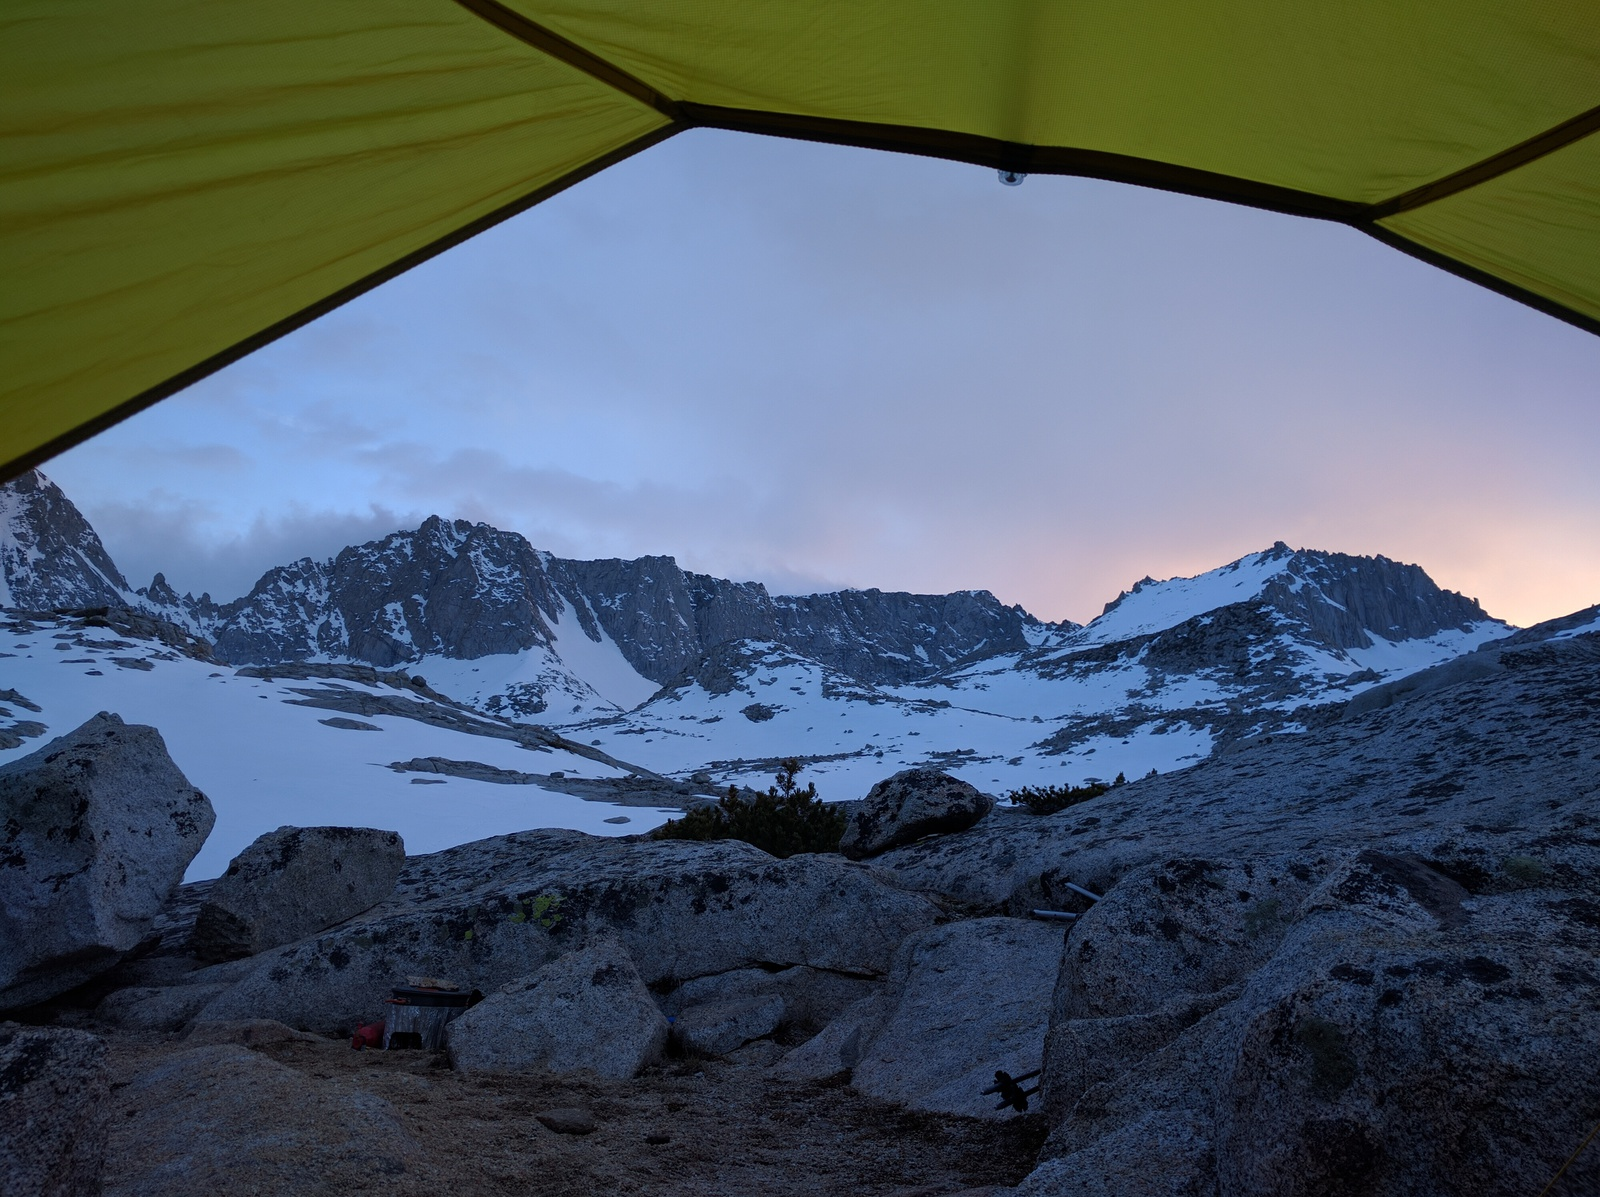 sunset-lit sky over the mountains, peering out of a tent